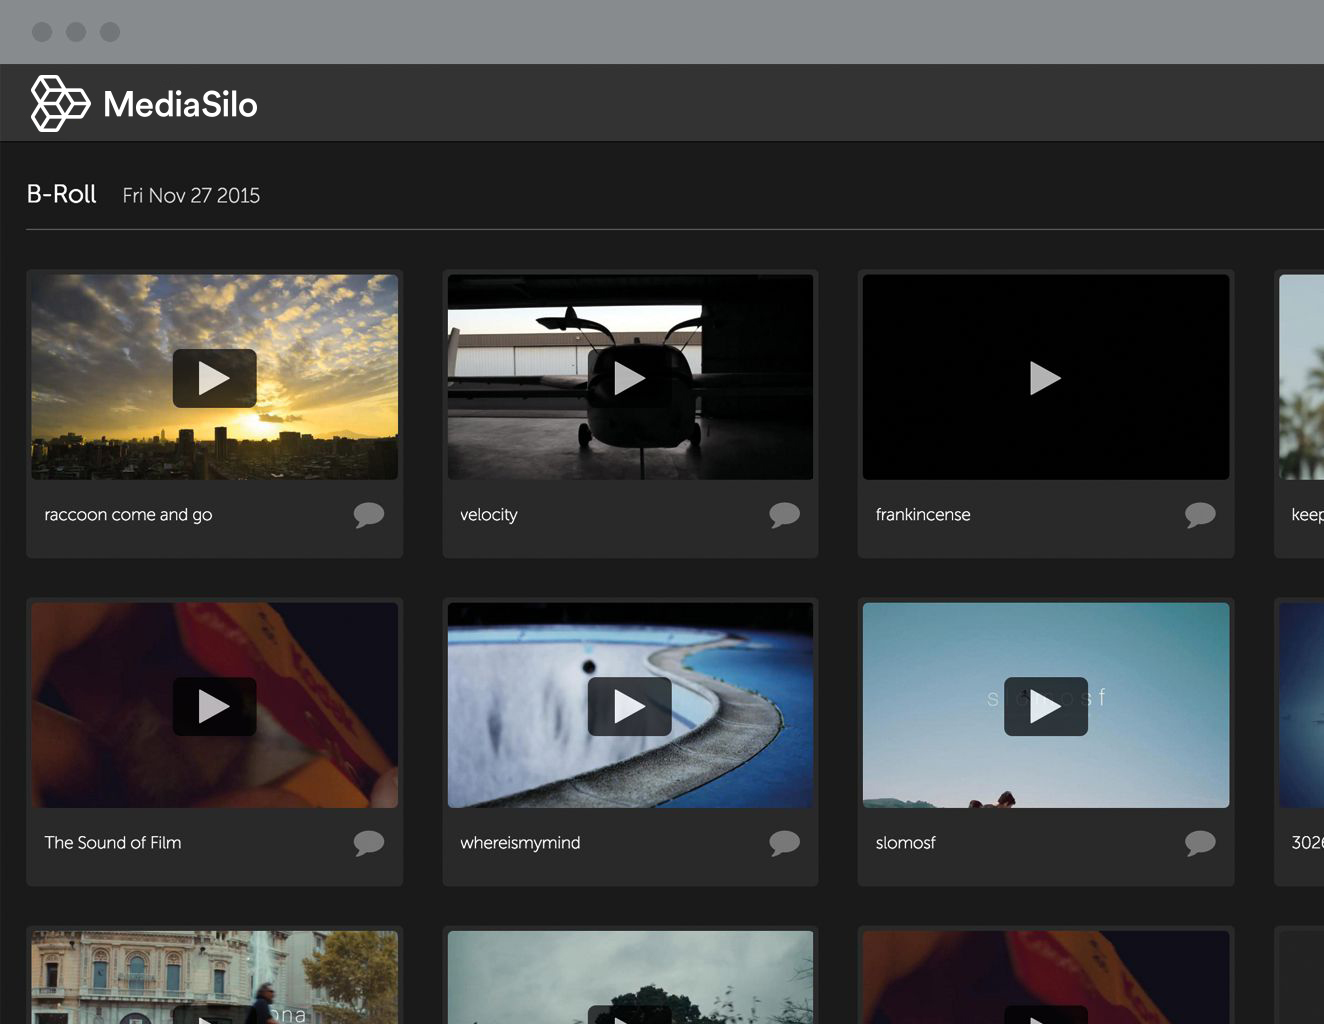 MediaSilo Demo - MediaSilo is the industry standard in video sharing and collaboration